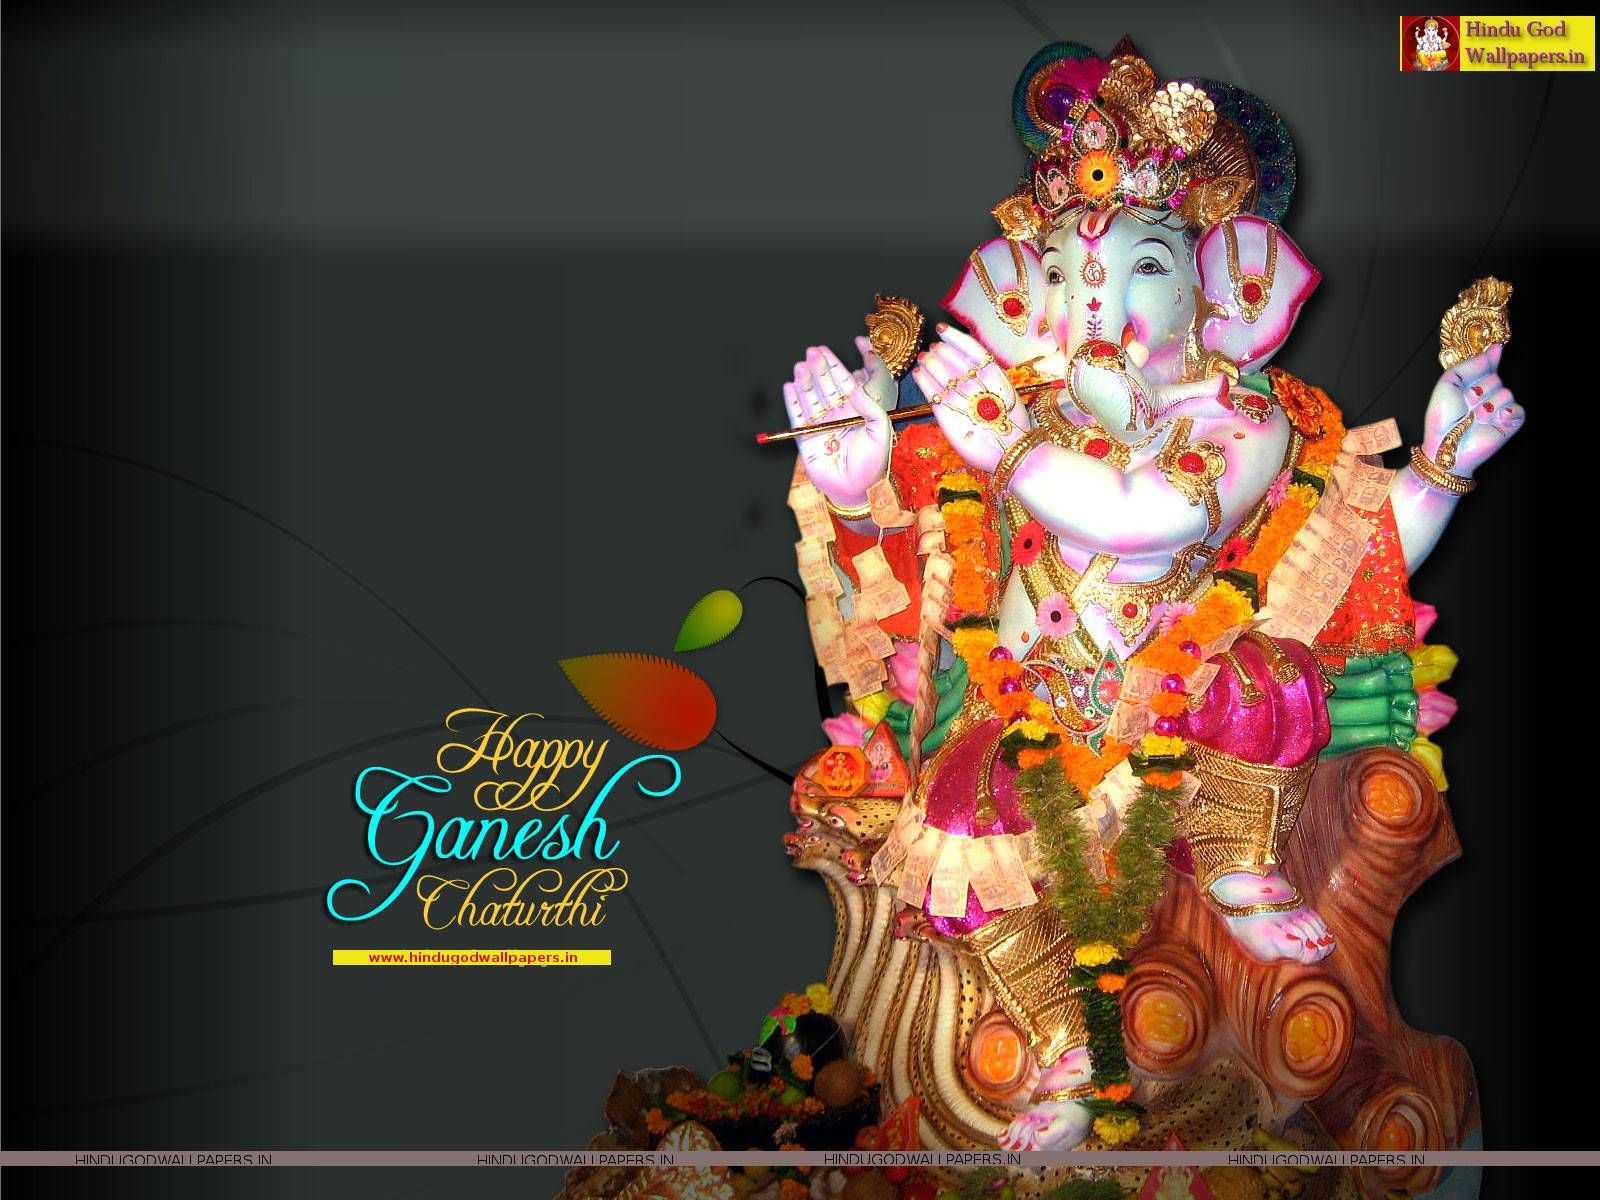 Free download unique ganesha chaturthi images god wallpaper god free download unique ganesha chaturthi images god wallpaper god images hindu god wallpapers voltagebd Choice Image